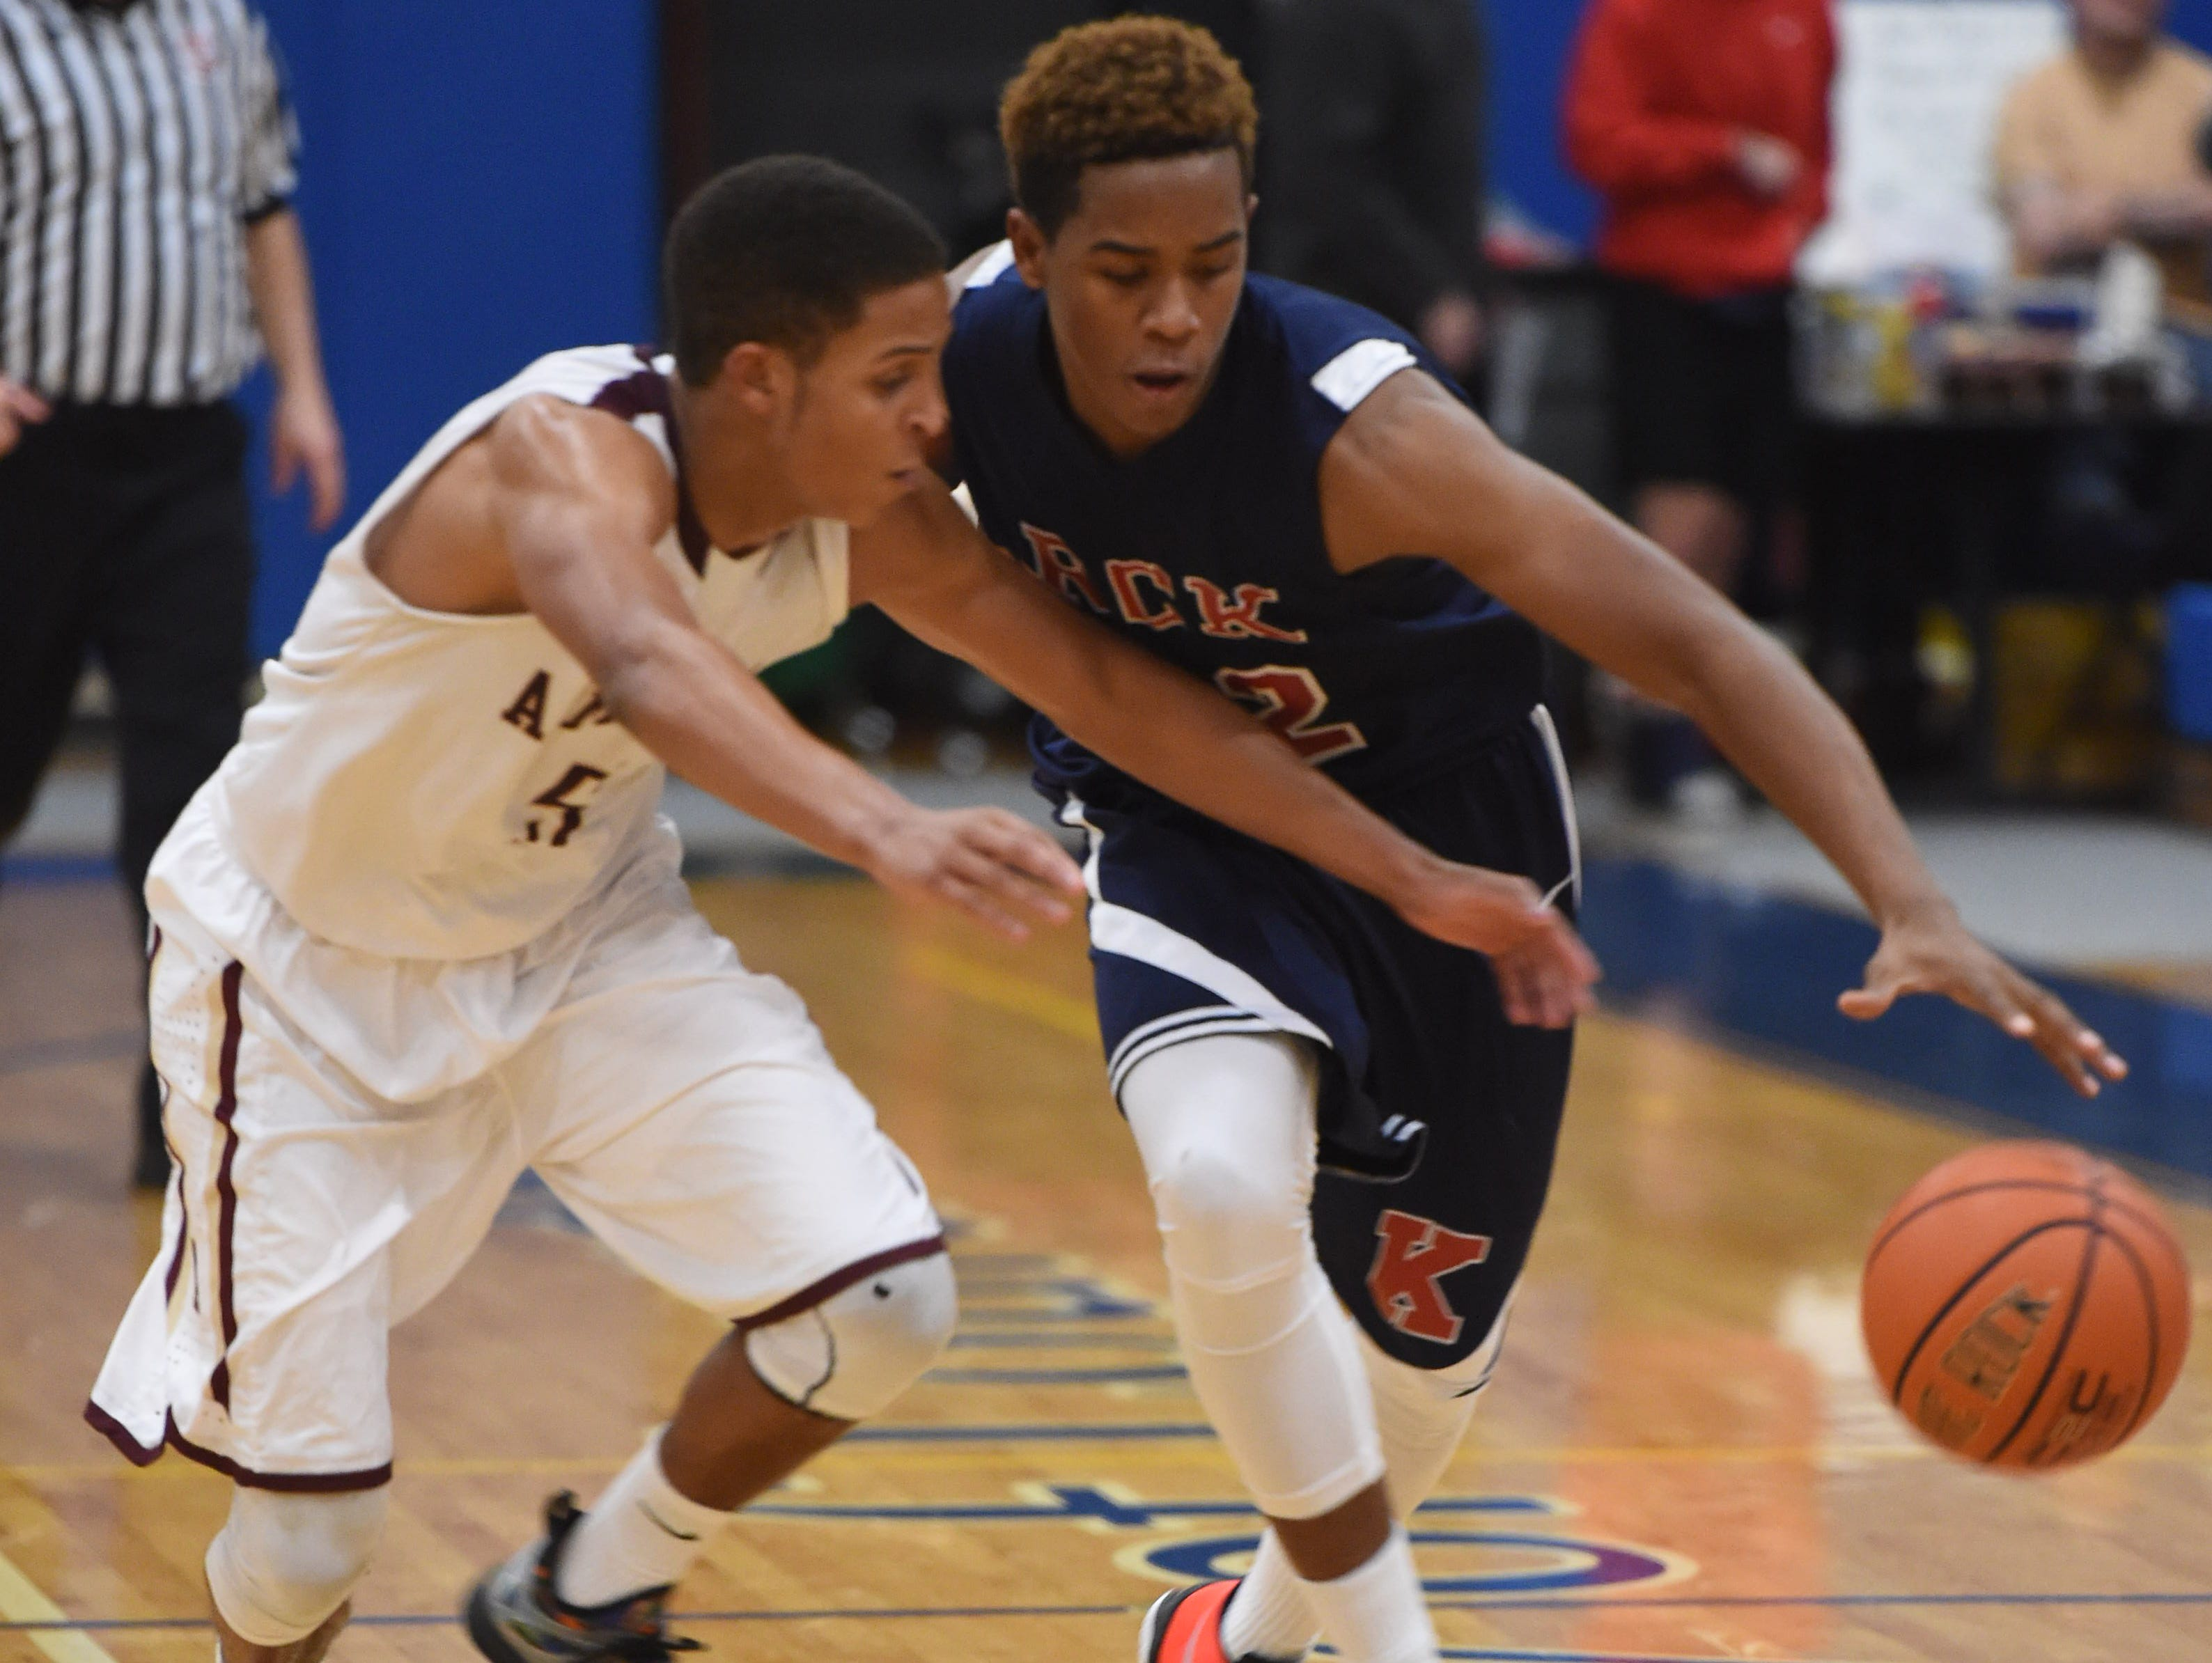 Ketcham's Zaahir Woody keeps the ball away from Arlington's Justin Leigh during the Duane Davis Memorial Holiday Tournament in Poughkeepsie on Wednesday.